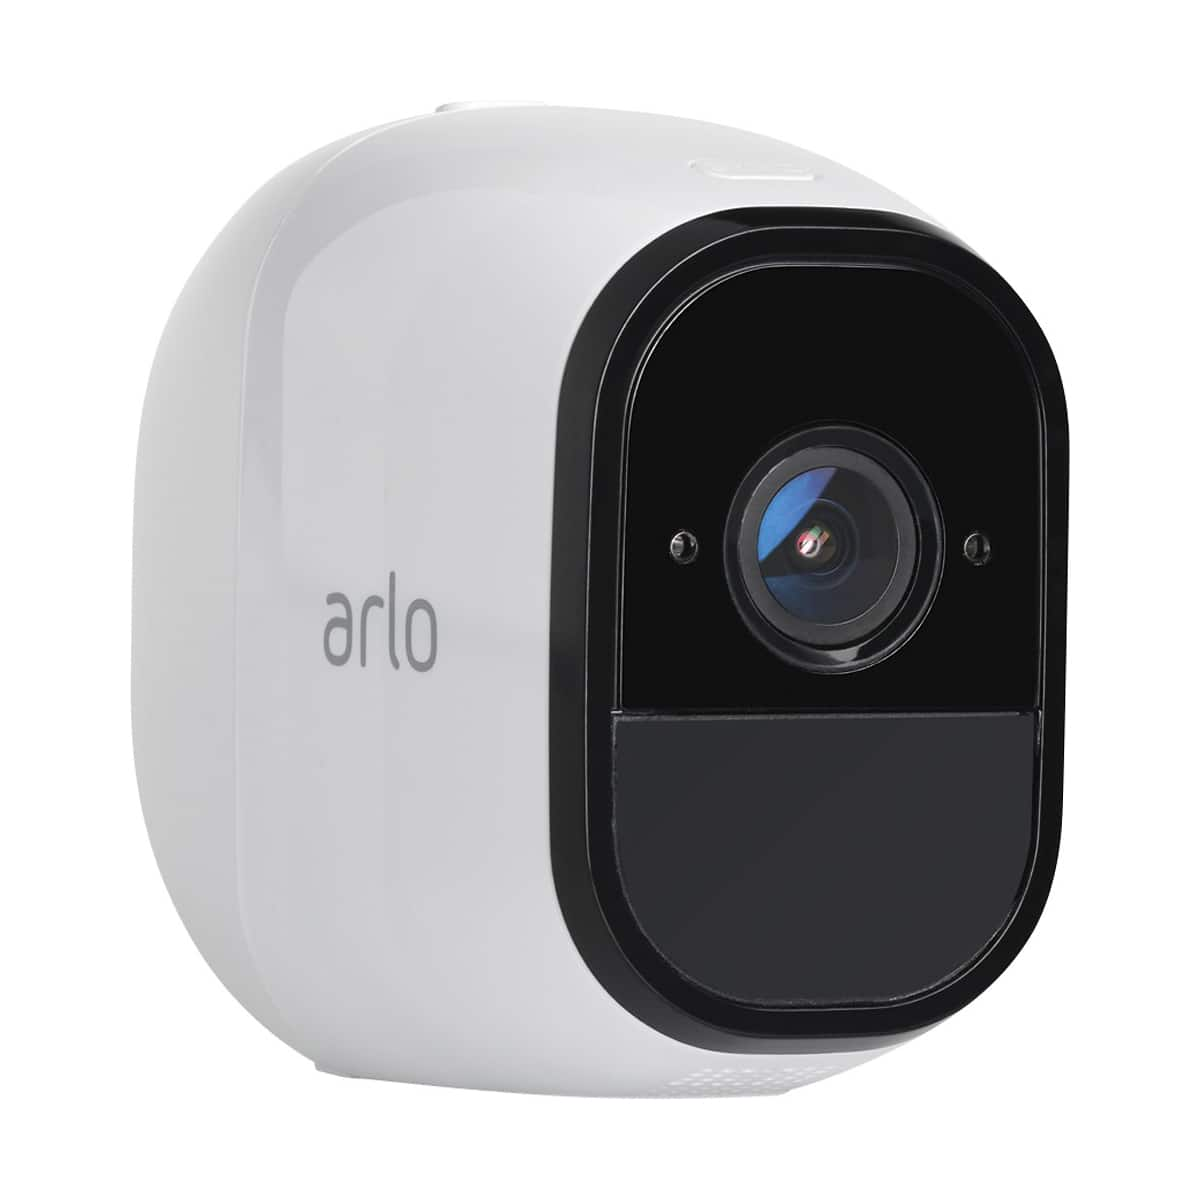 Arlo Q HD Security Indoor Camera $138.39, Arlo Pro Add-On Indoor and Outdoor HD Wire Free Security Camera $138.39 + Free Shipping